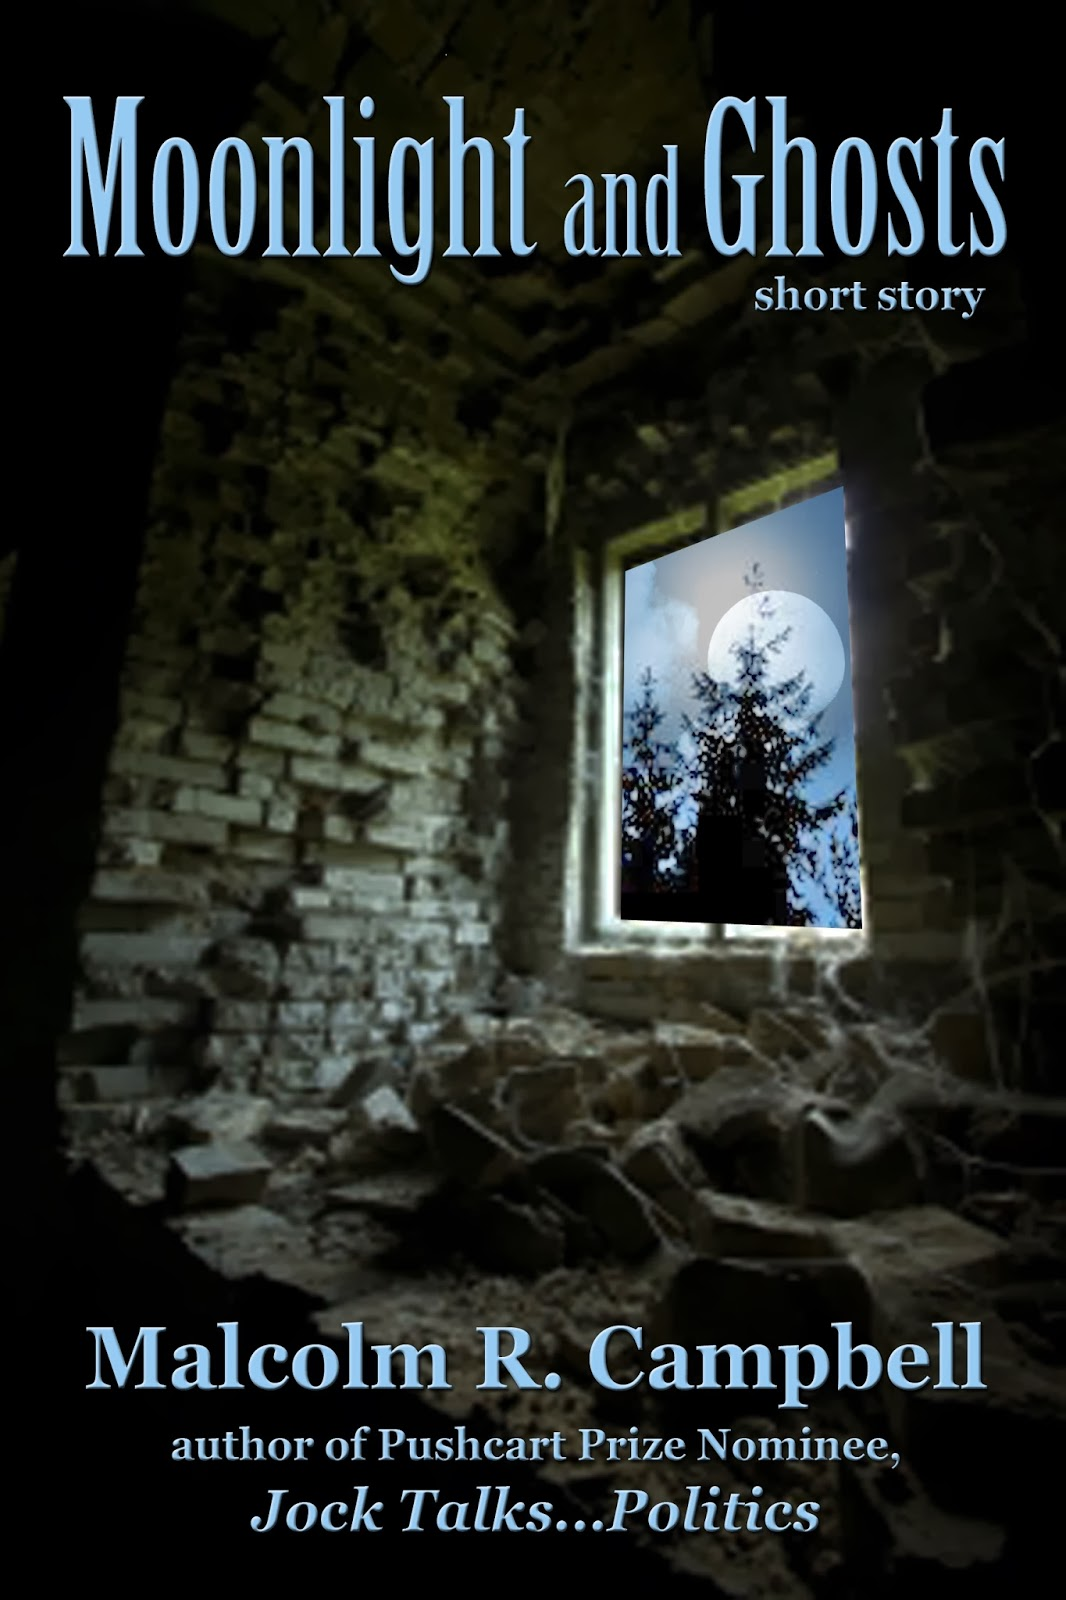 http://www.amazon.com/Moonlight-Ghosts-short-Malcolm-Campbell-ebook/dp/B009HLO11M/ref=sr_1_1?ie=UTF8&qid=1392831849&sr=8-1&keywords=moonlight+and+ghosts+campbell